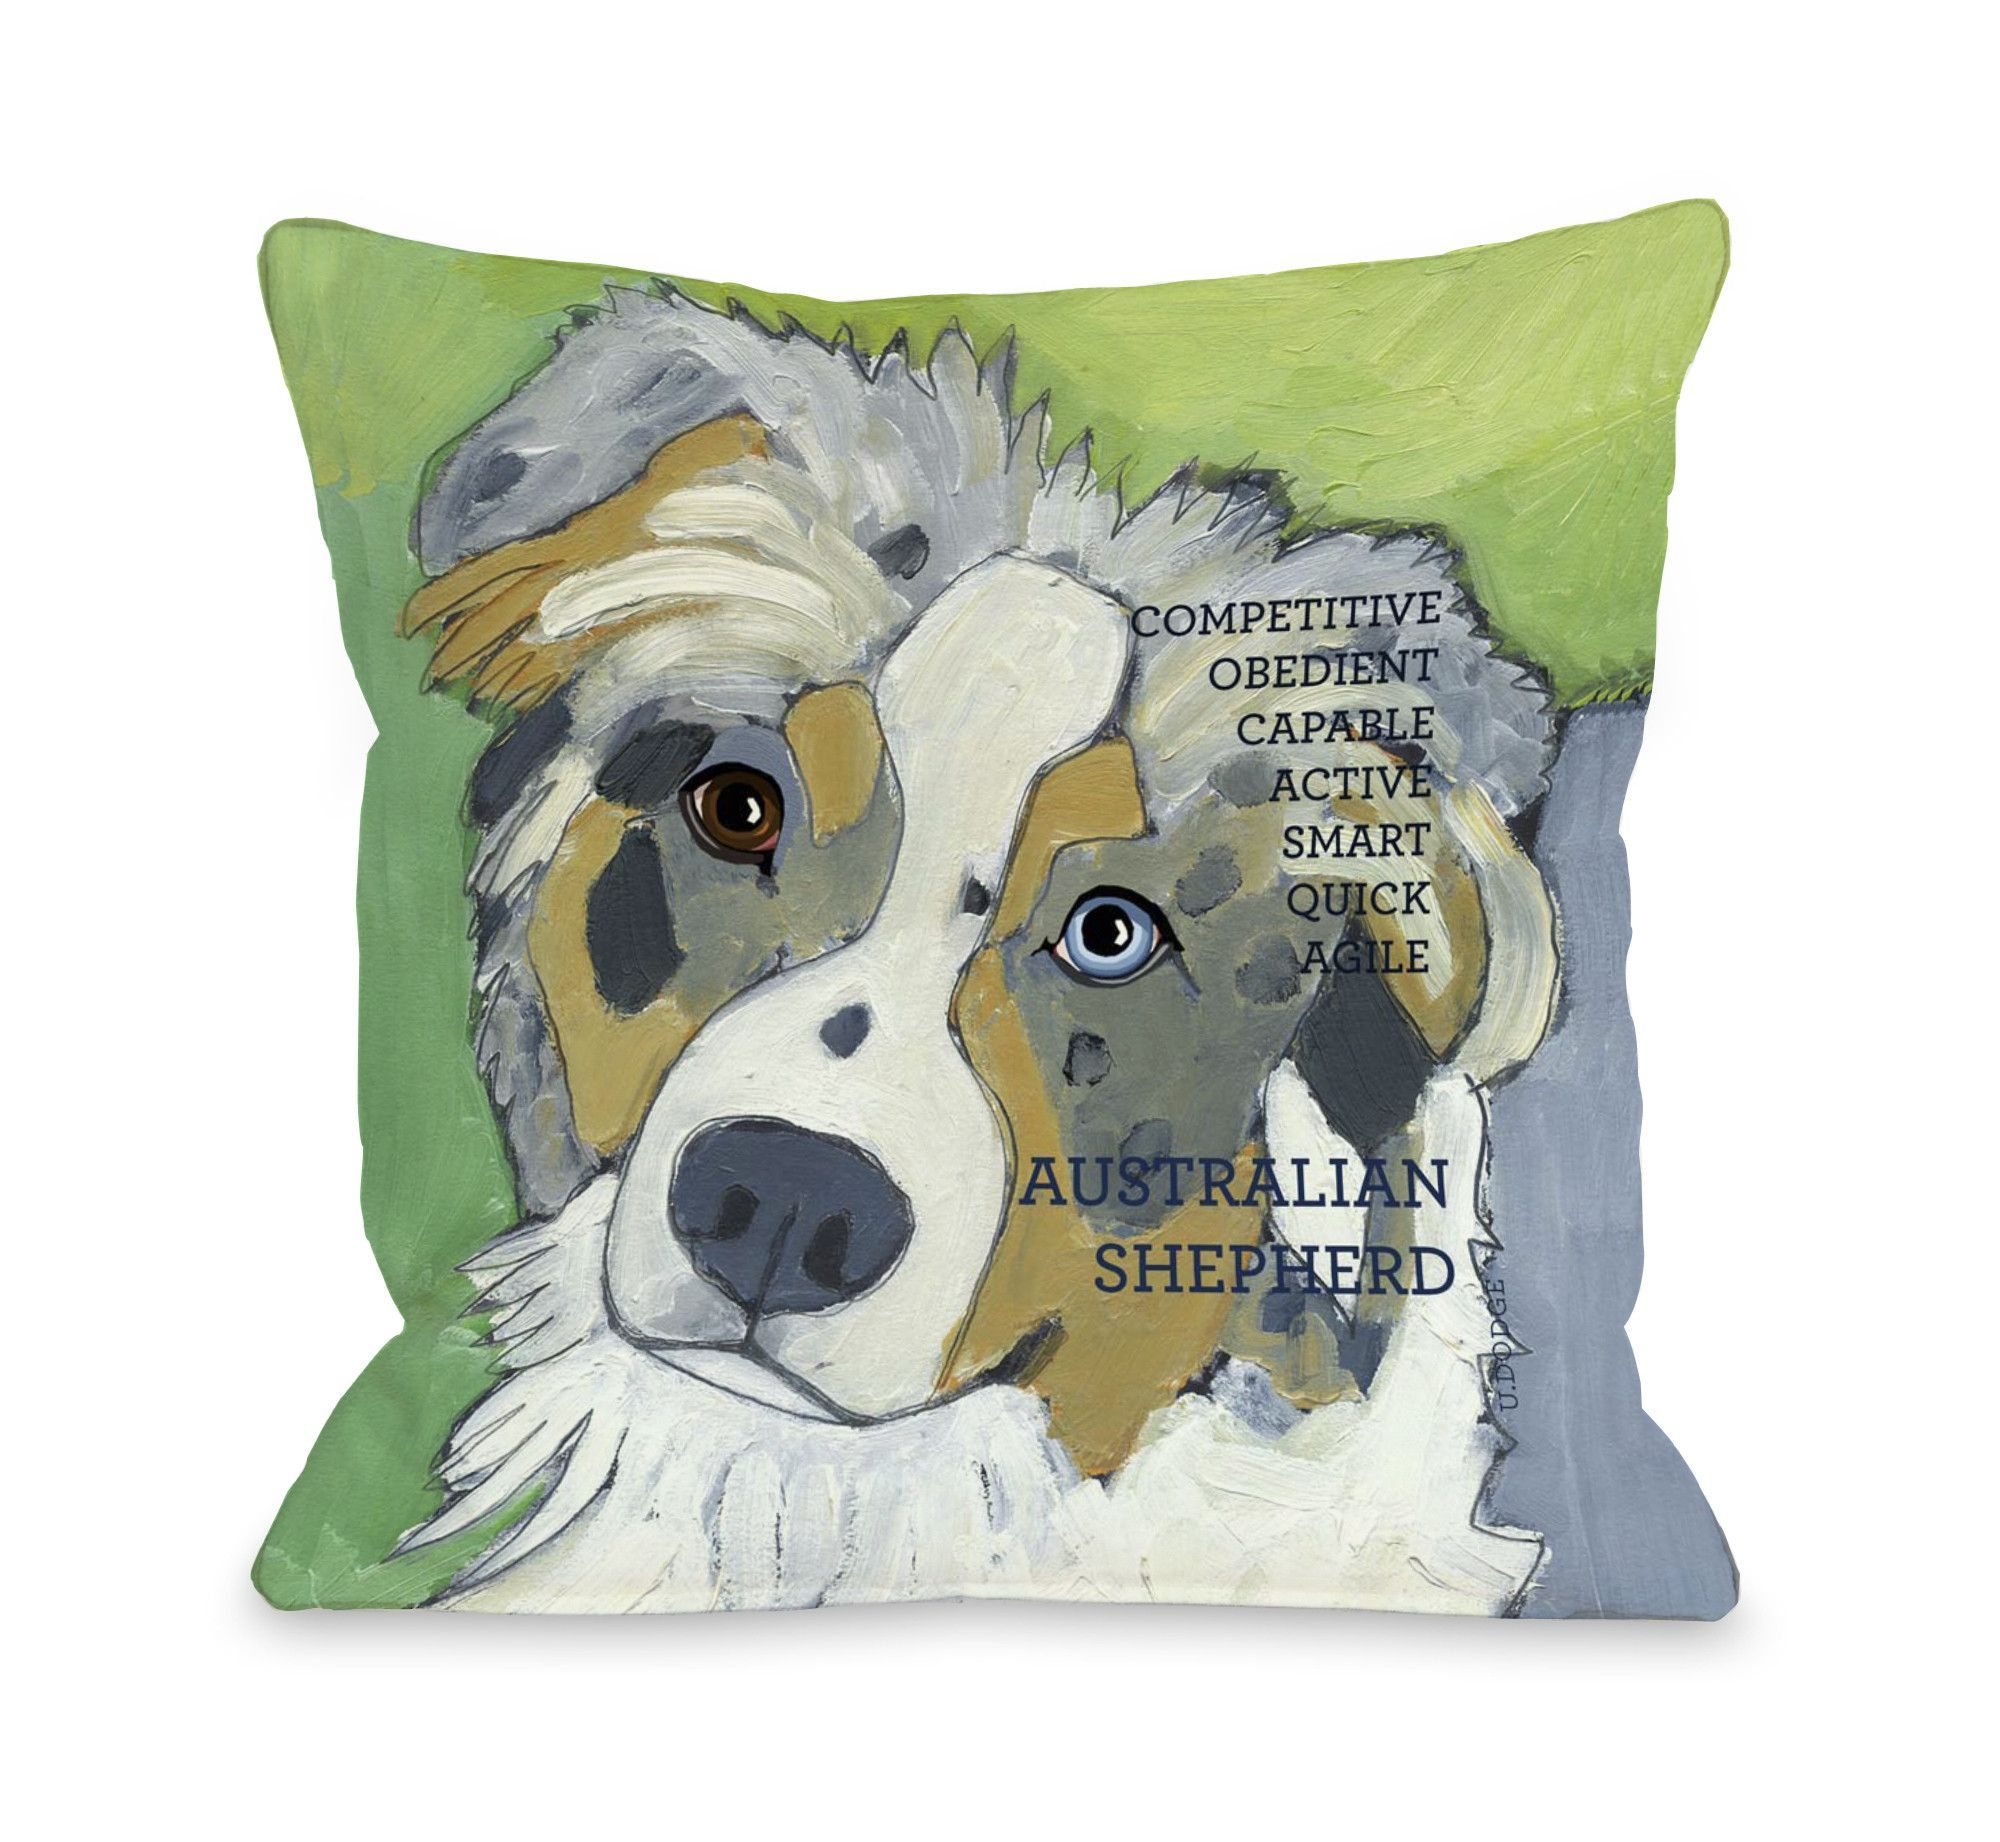 Australian Sheep Dog 1 Throw Pillow by Ursula Dodge | Products ...